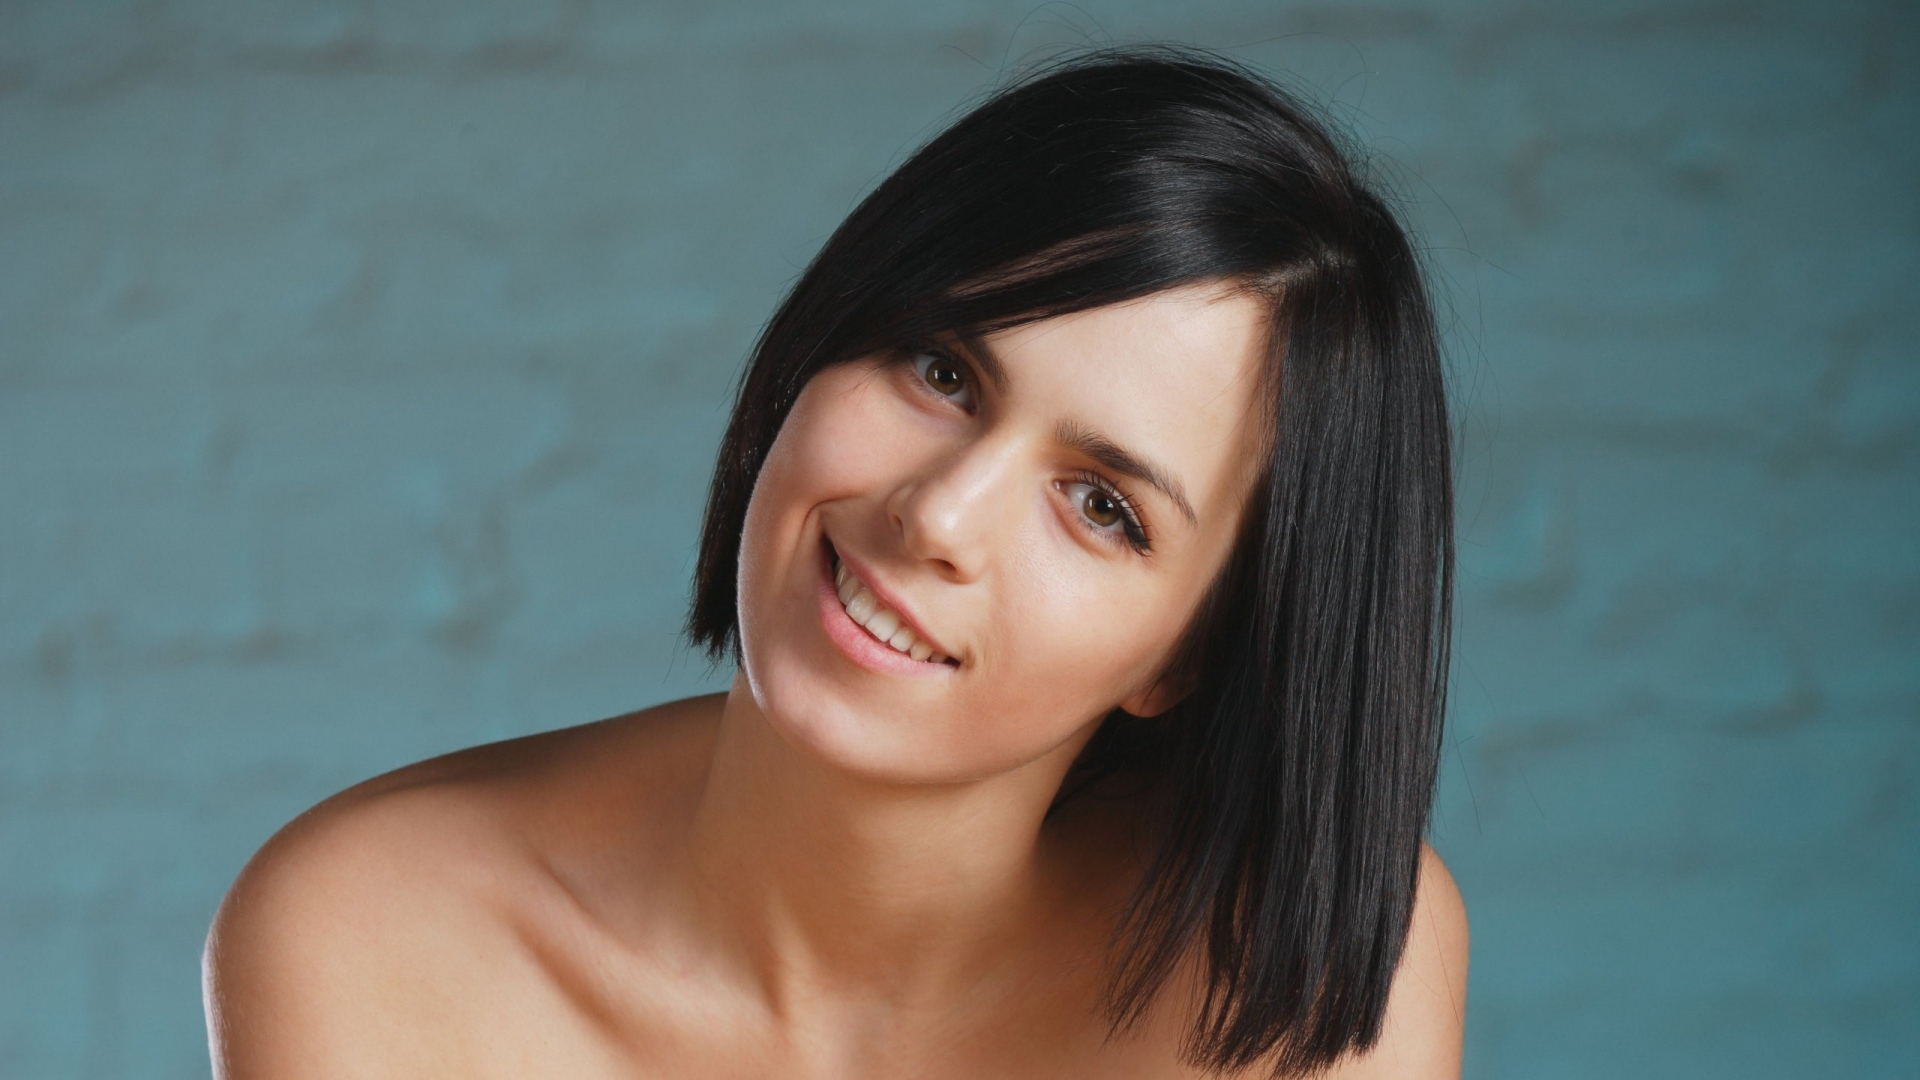 Download Wallpaper 1920x1080 Brunette Brown Eyed Hair Cutting Smile Full Hd 1080p Hd Background